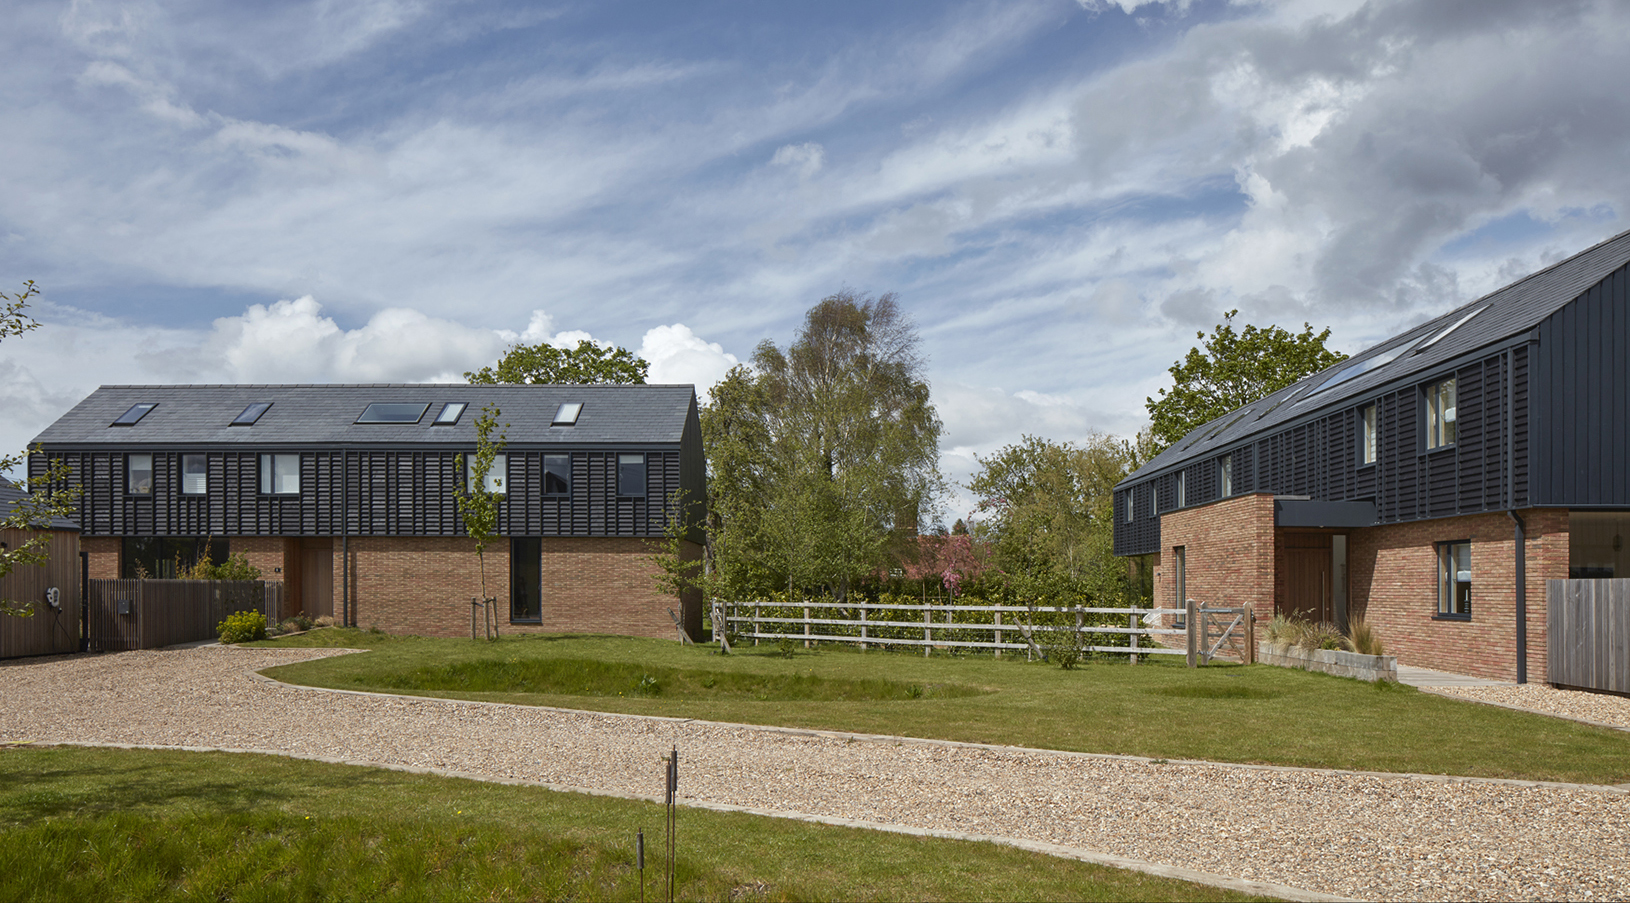 Loxley Stables, Herts